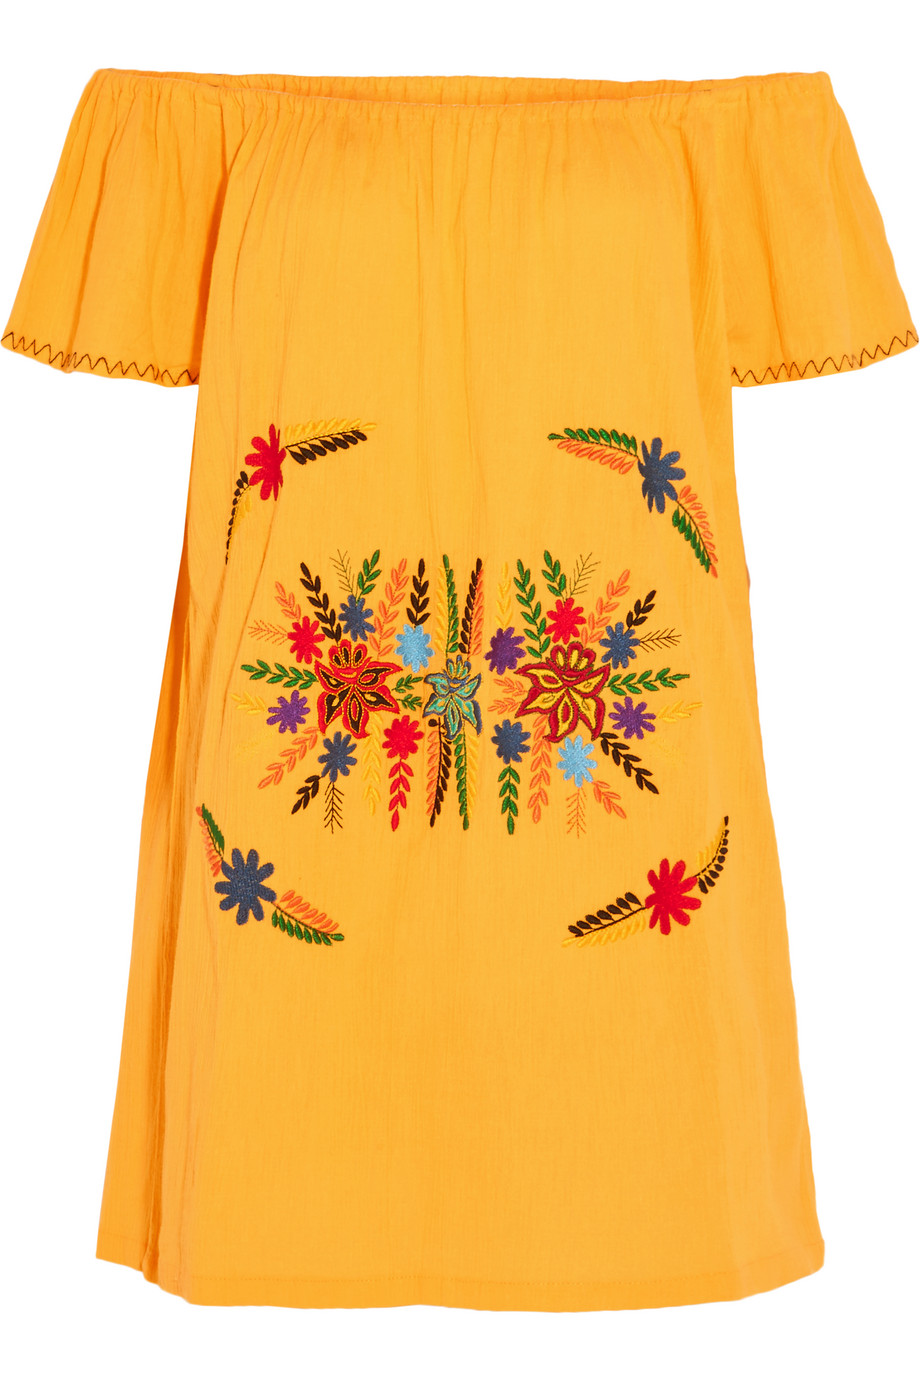 Sensi Studio Off-the-Shoulder Embroidered Cotton Mini Dress, Yellow, Women's